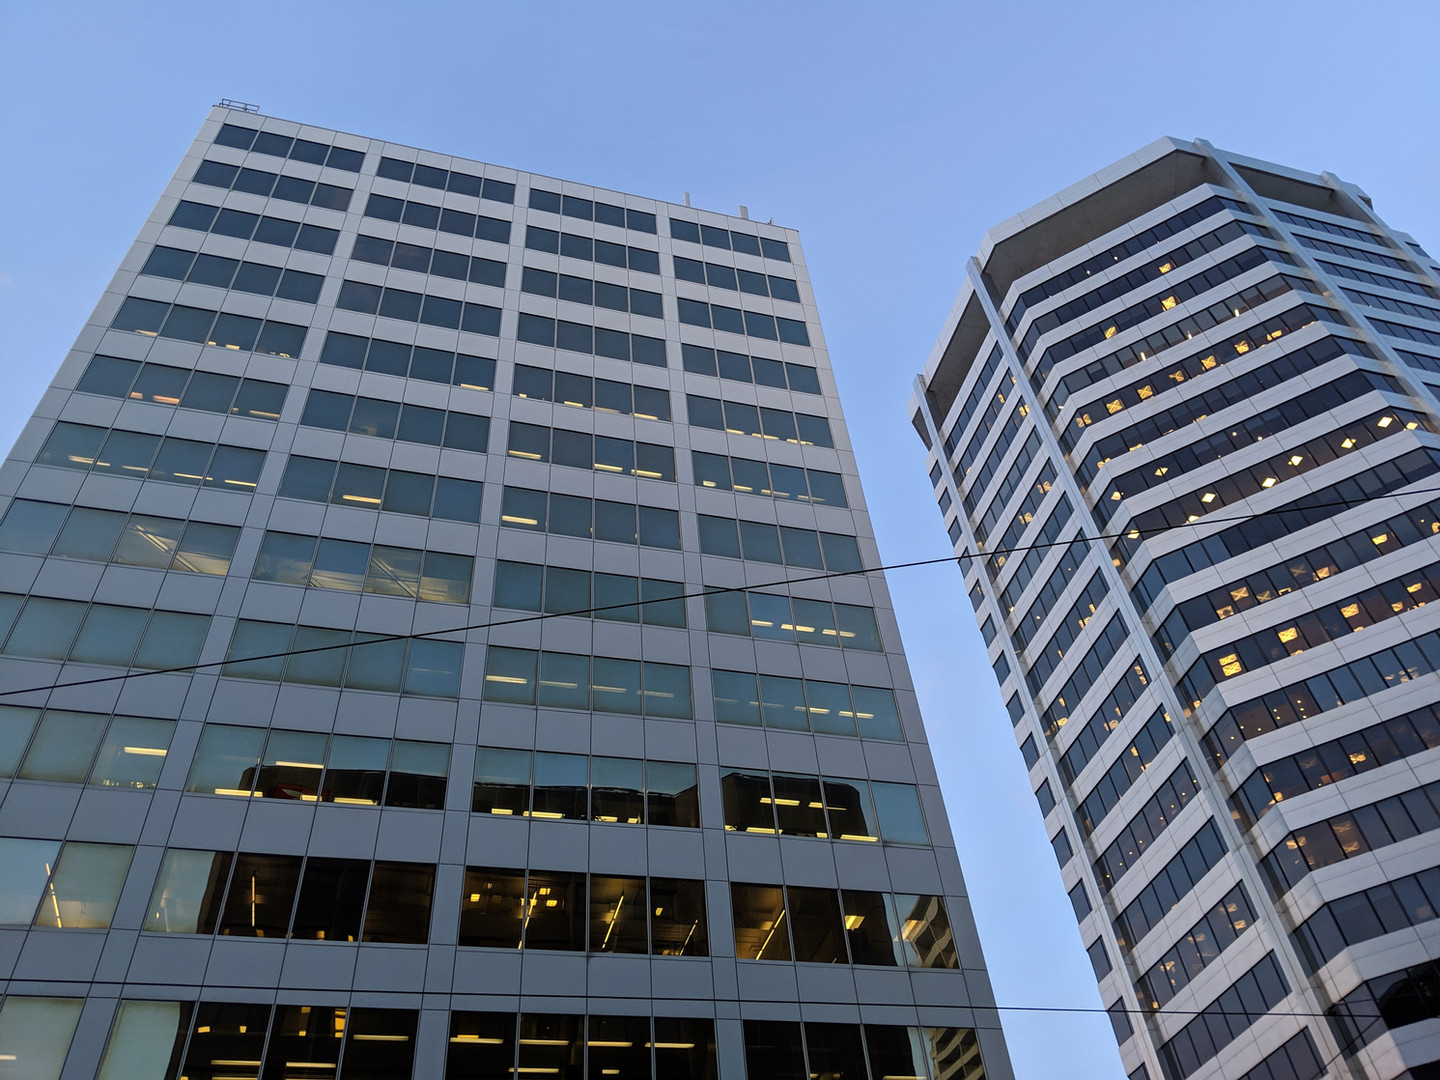 Office buildings on north side of St. Clair Avenue